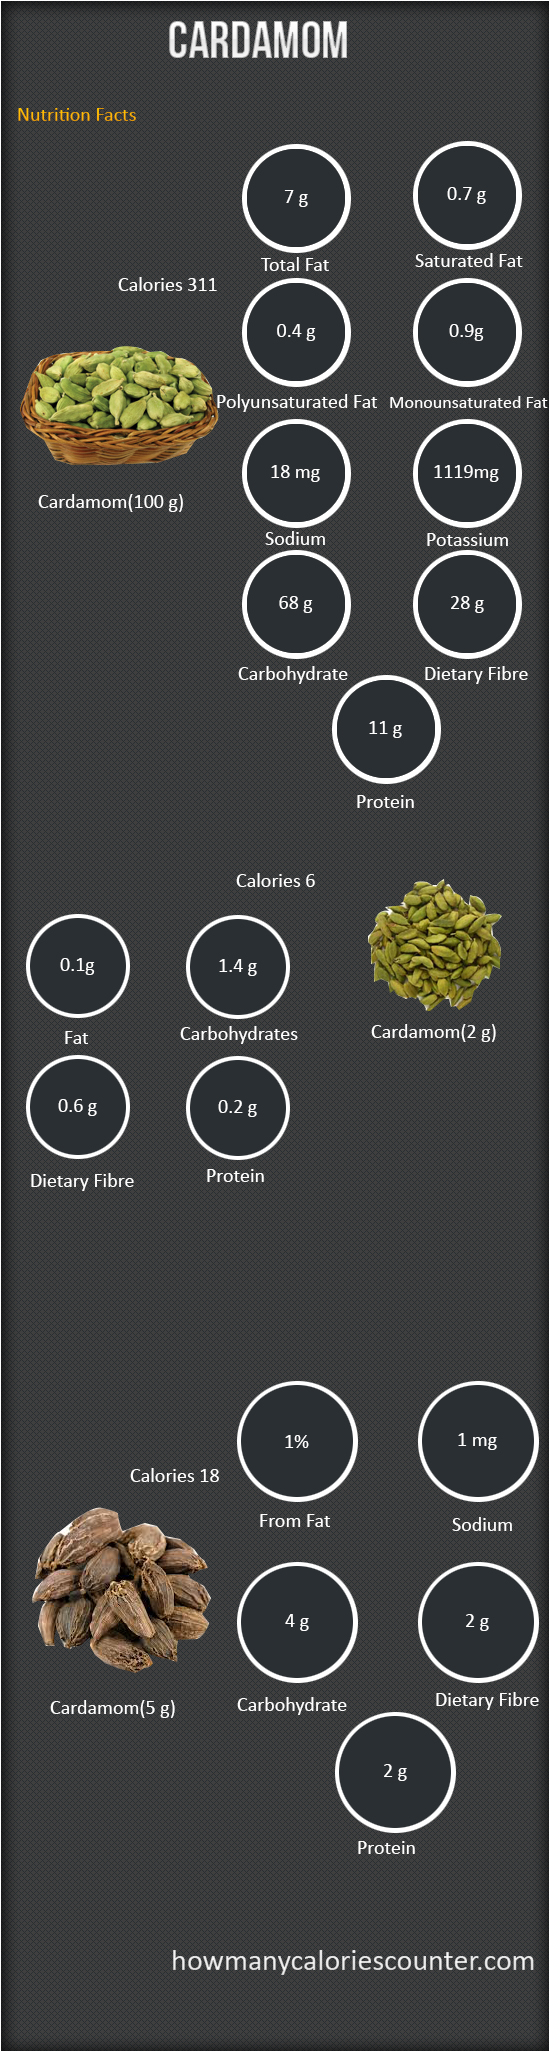 Calories in a Cardamom